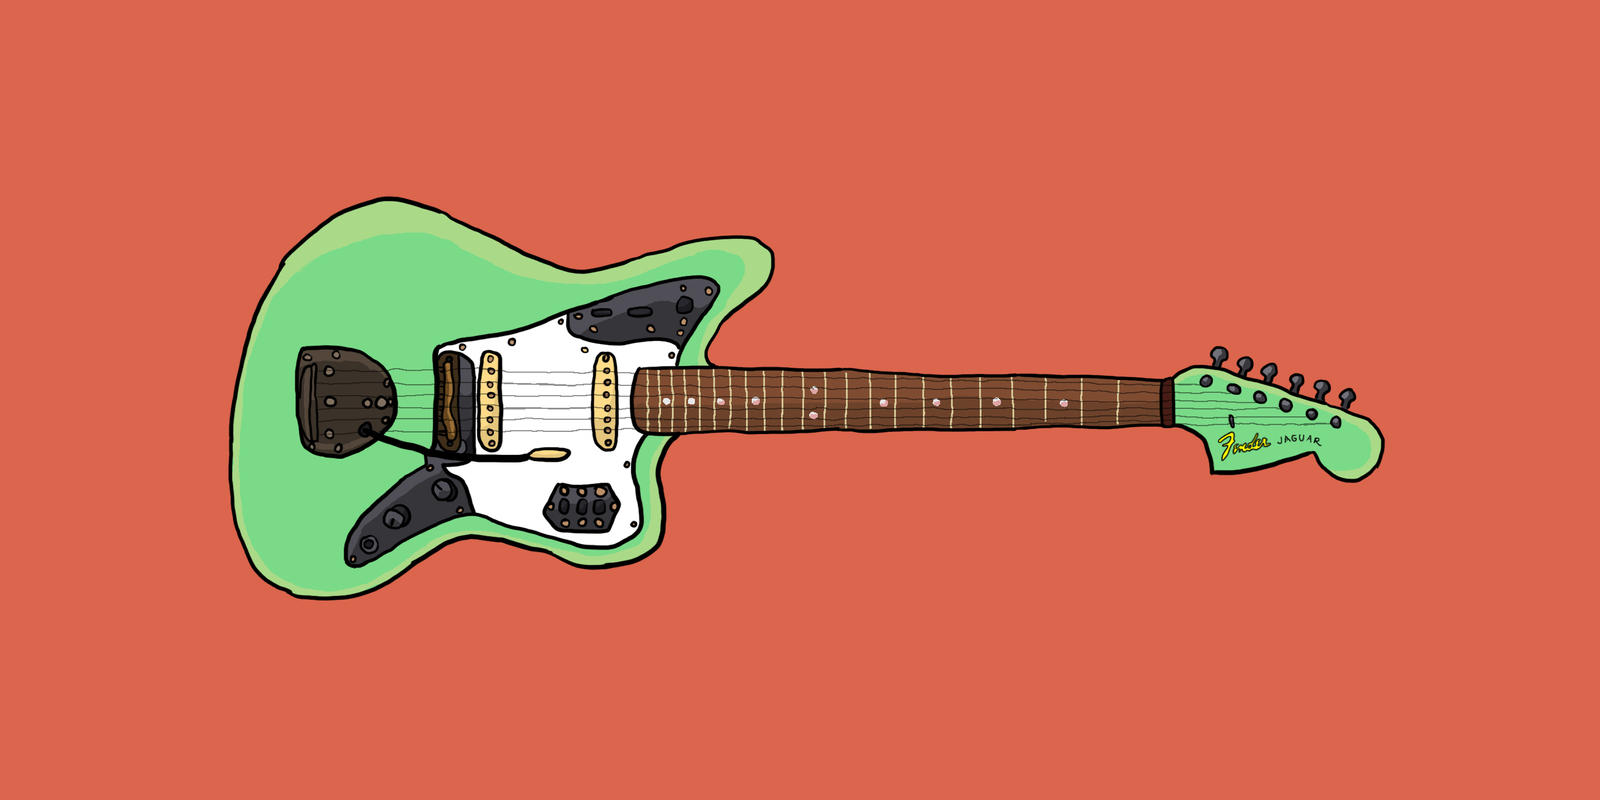 fender jaguar wallpaper - photo #17